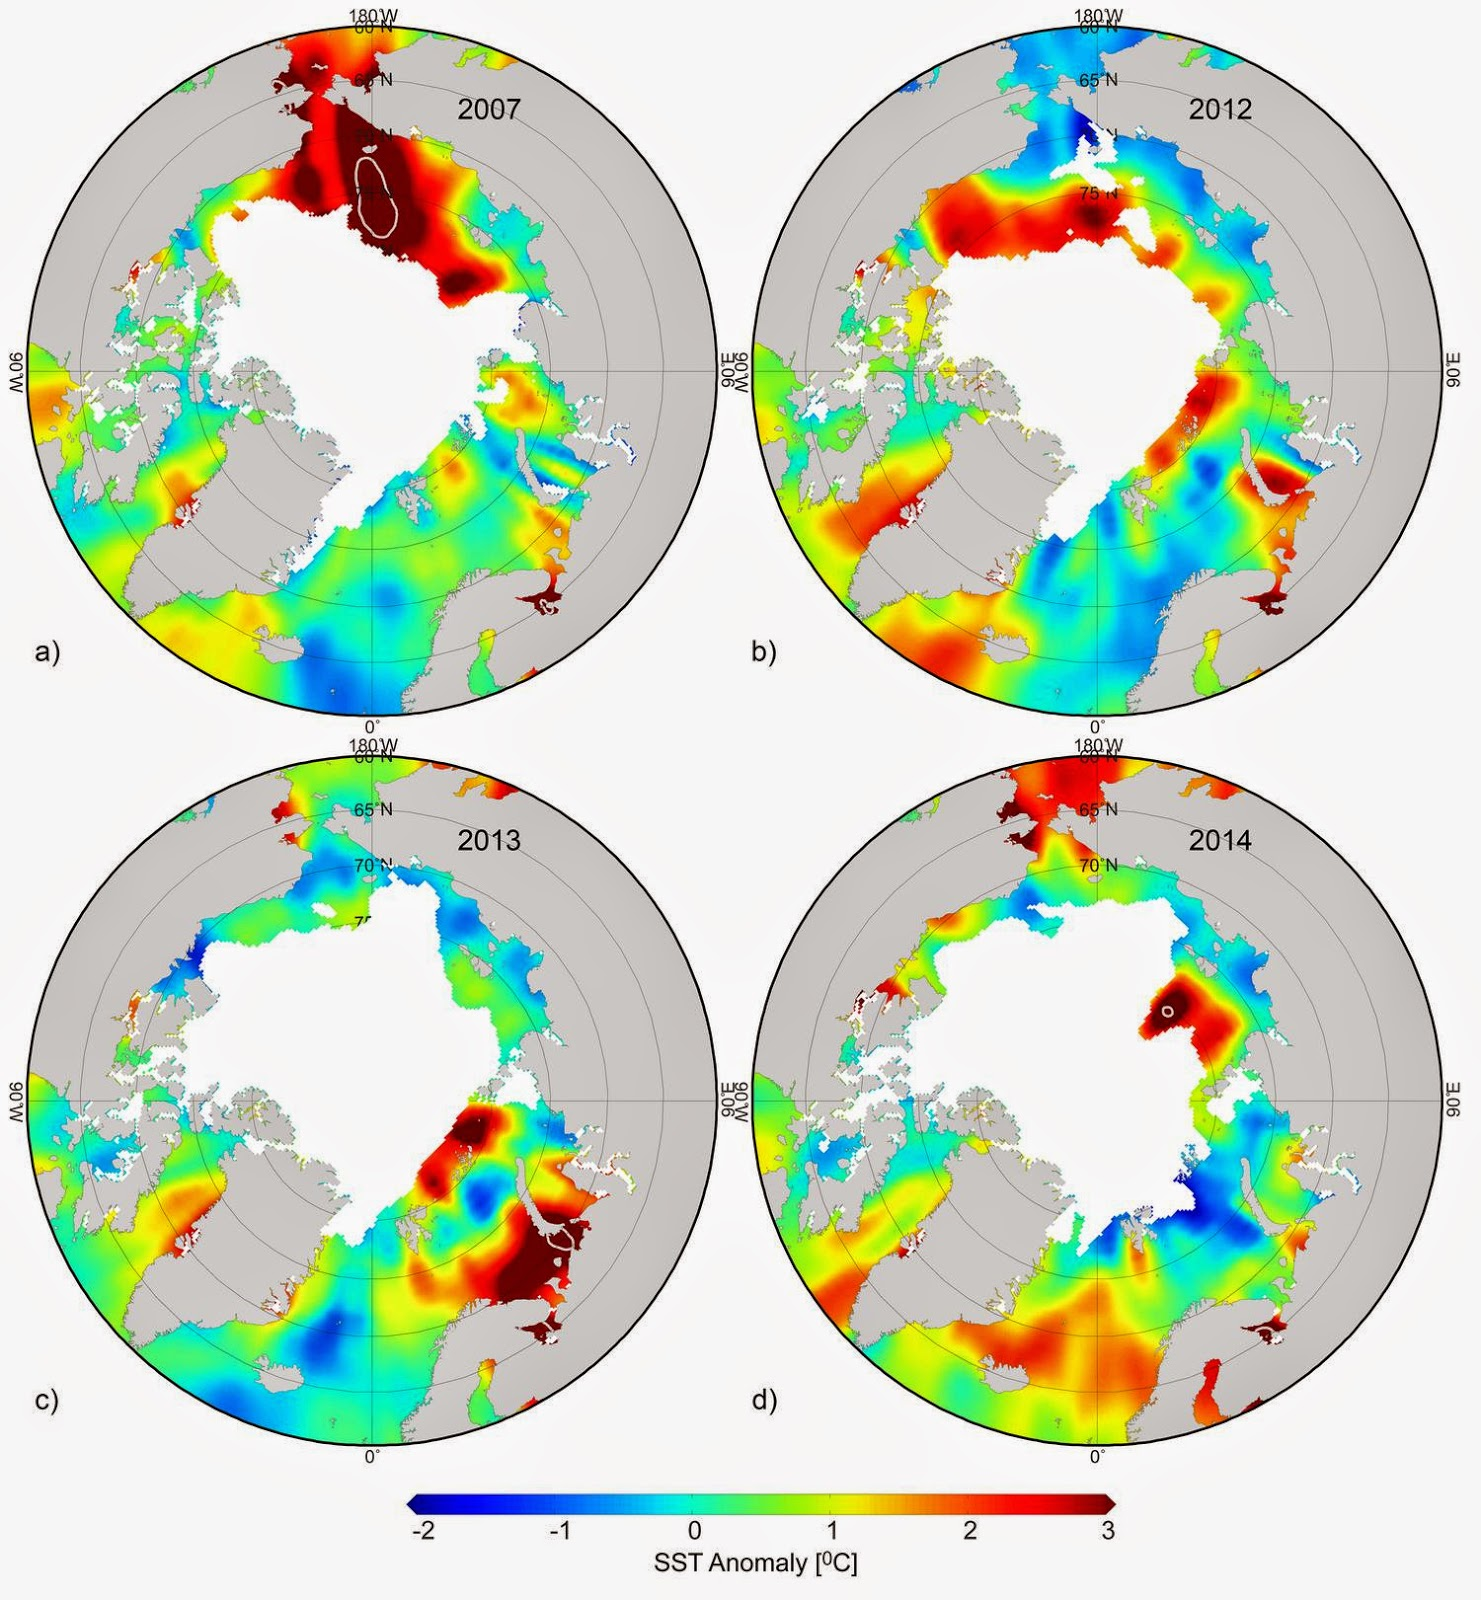 http://www.arctic.noaa.gov/reportcard/images-essays/fig5.2-timmermans.png